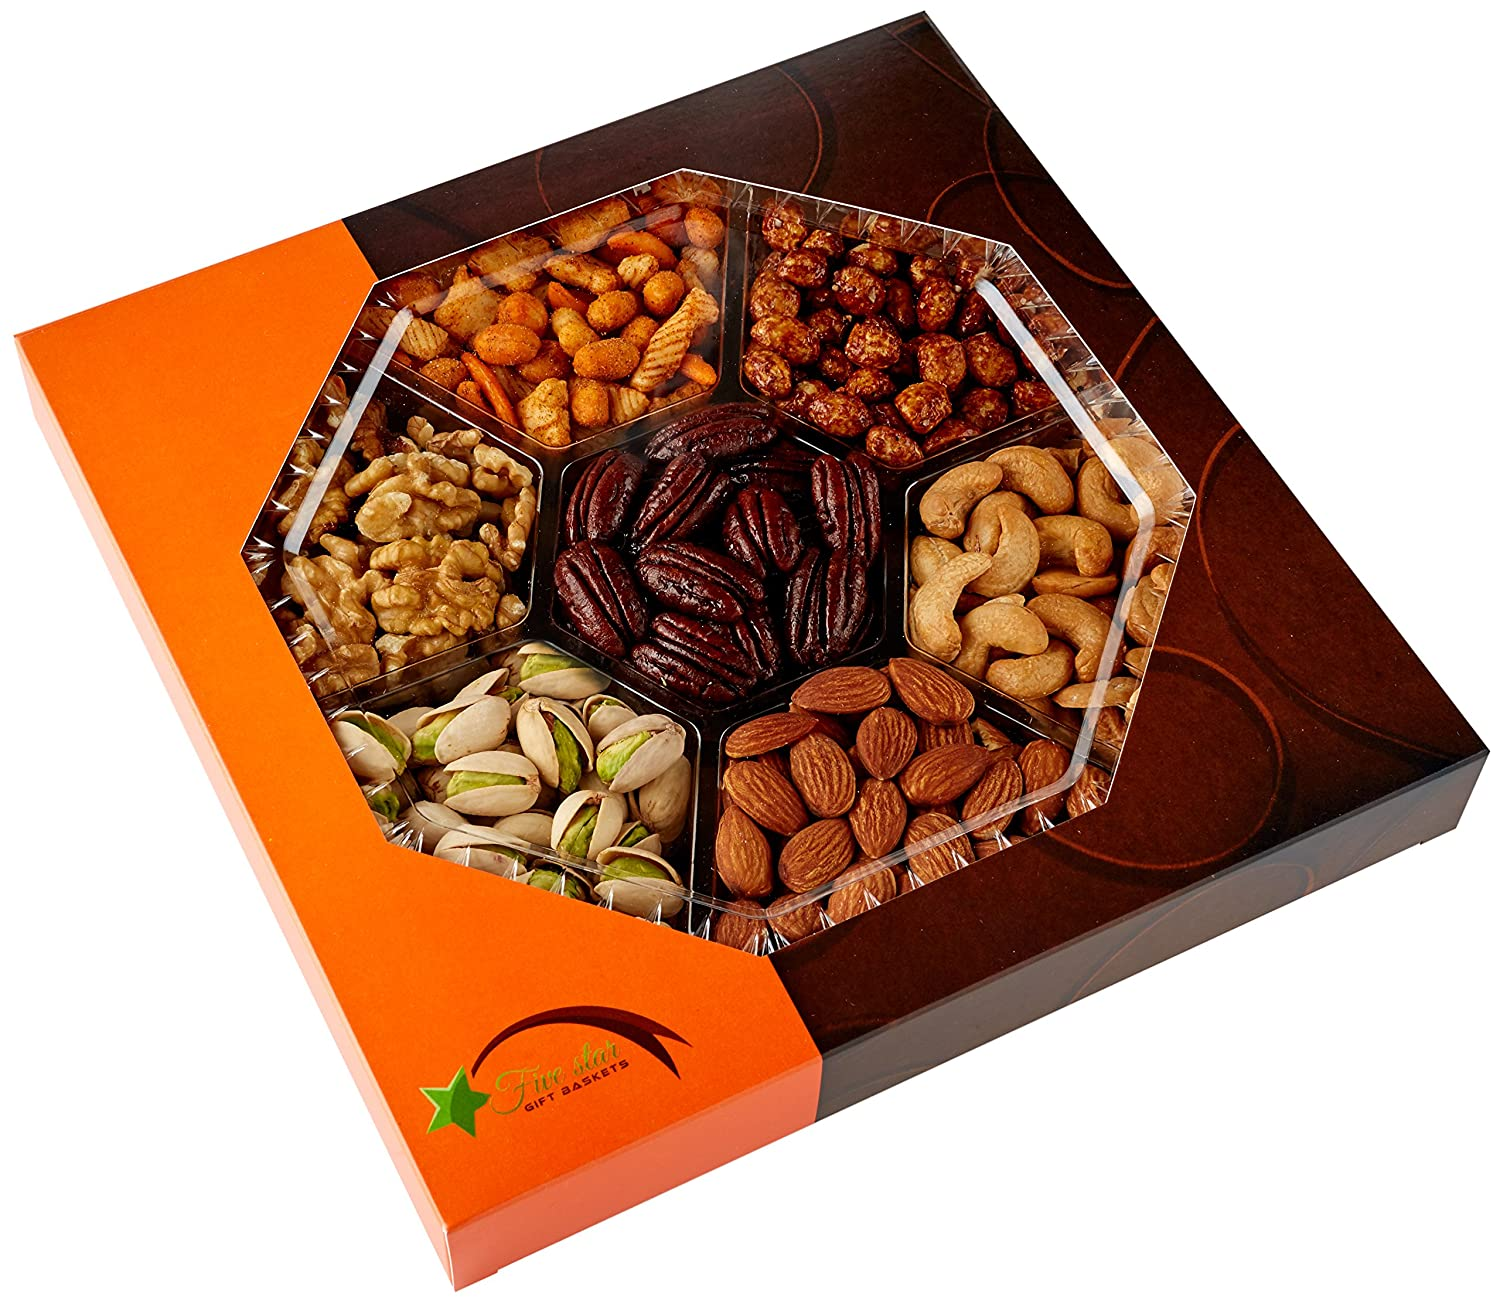 Amazon nuts gift baskets gourmet food baskets nuts gift amazon nuts gift baskets gourmet food baskets nuts gift basket mixed nuts nut baskets gifts 7 sectional fruit basket five star gift negle Choice Image